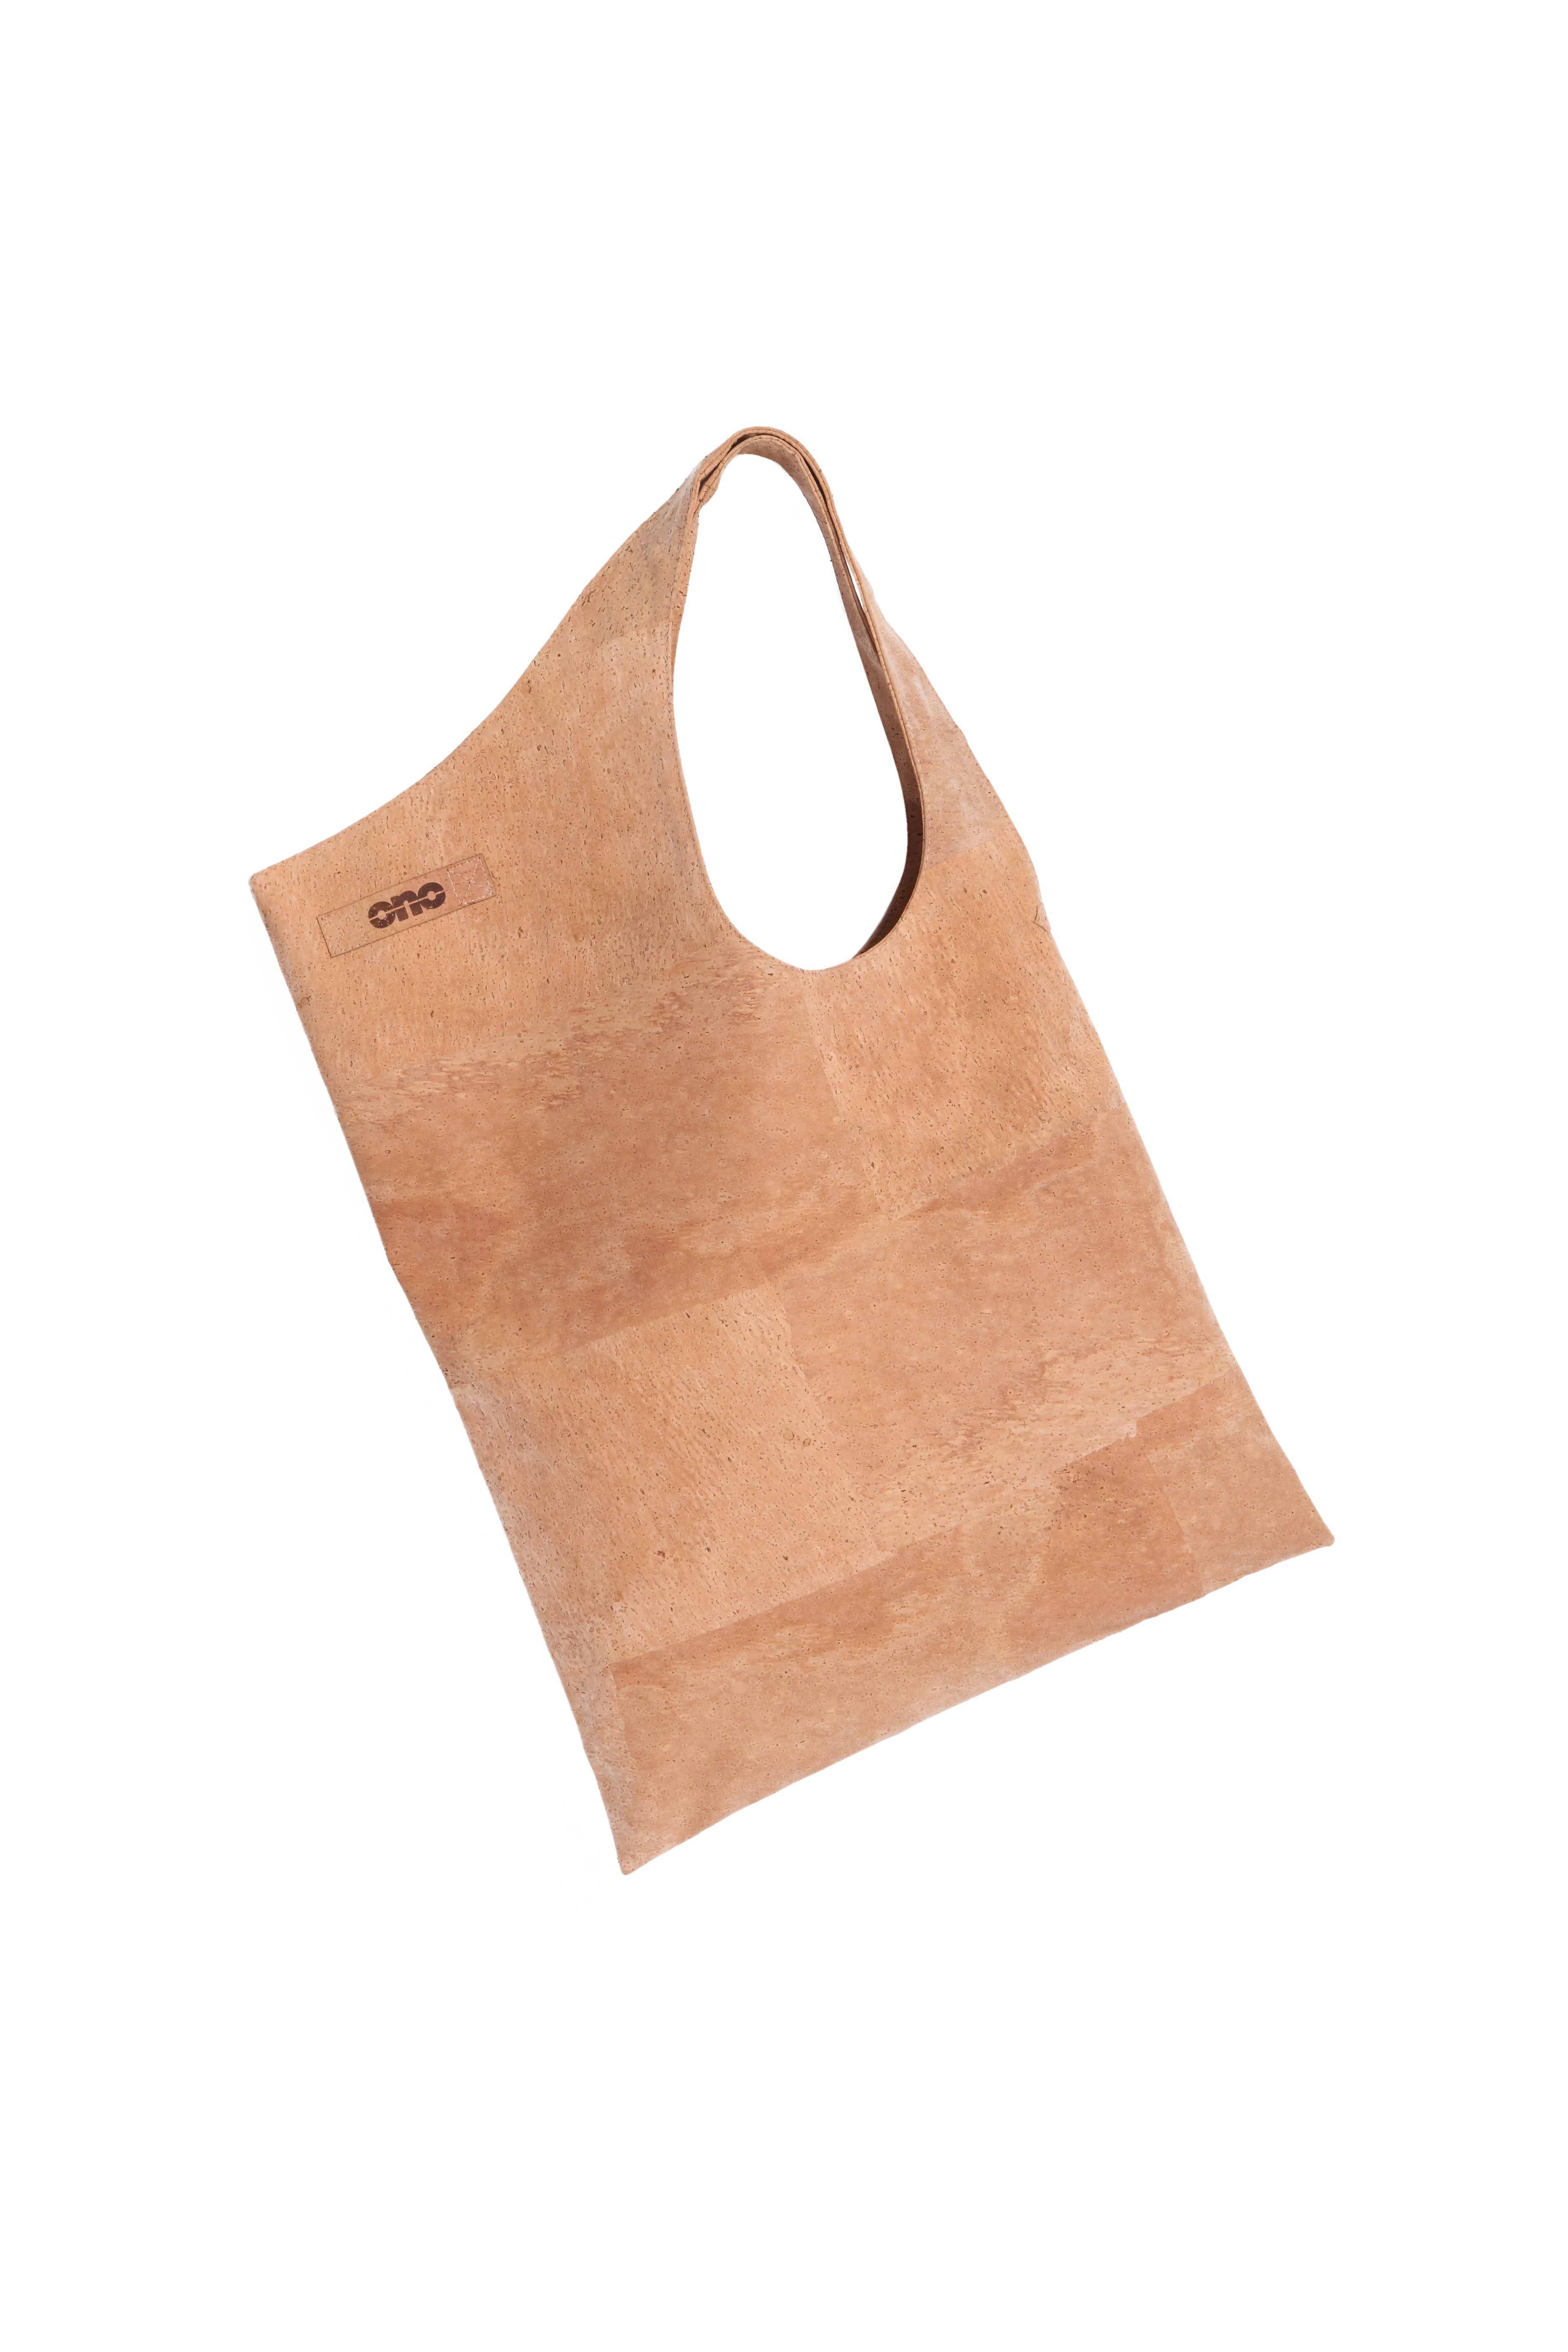 cor love (With images) City tote bag, Tote, Tote bag